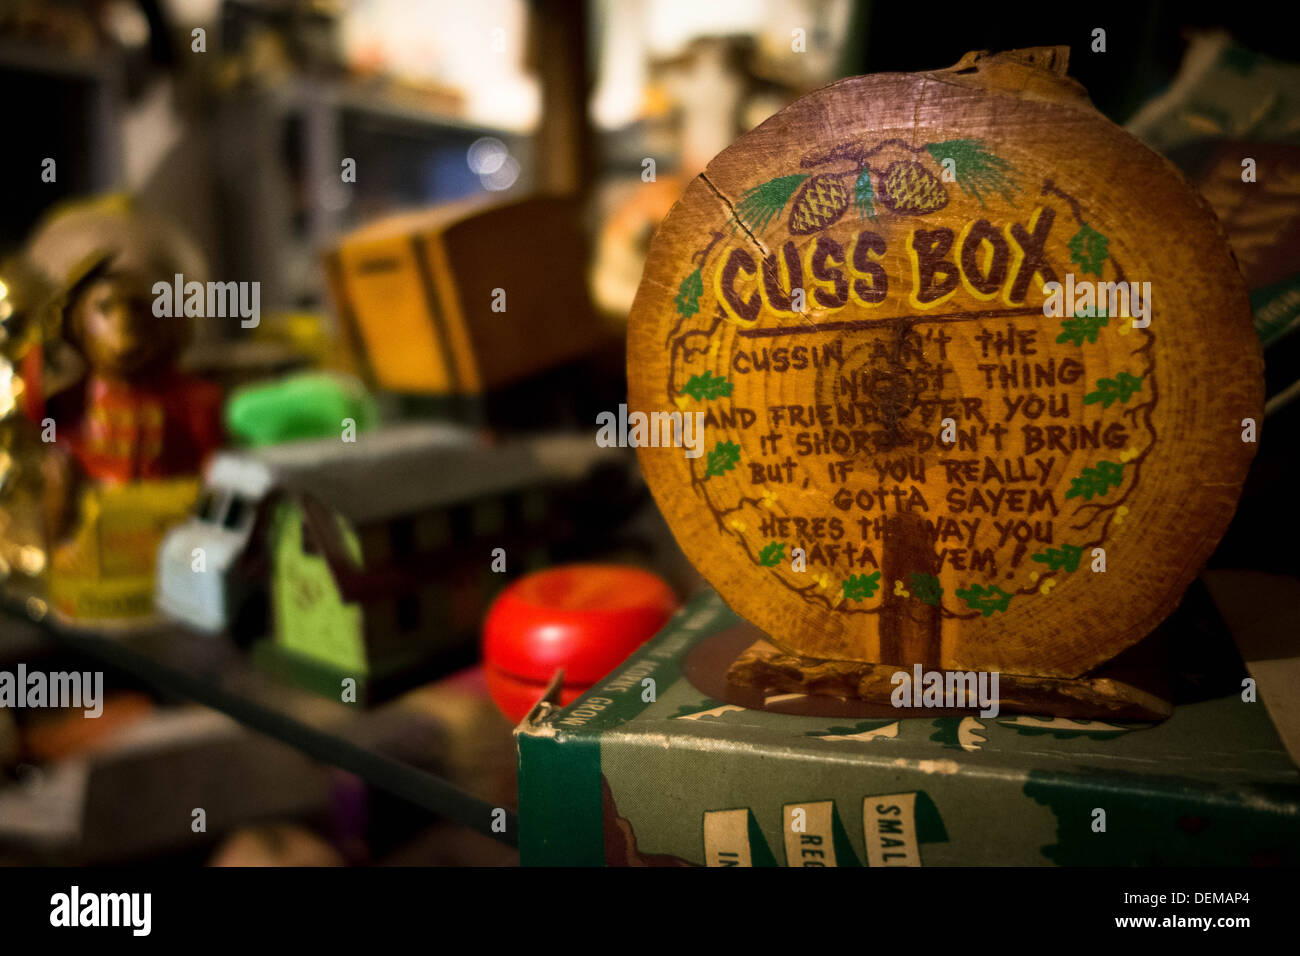 'Cuss Box' advocating swearing and using foul language, found in a Pittsburgh antique shop. - Stock Image